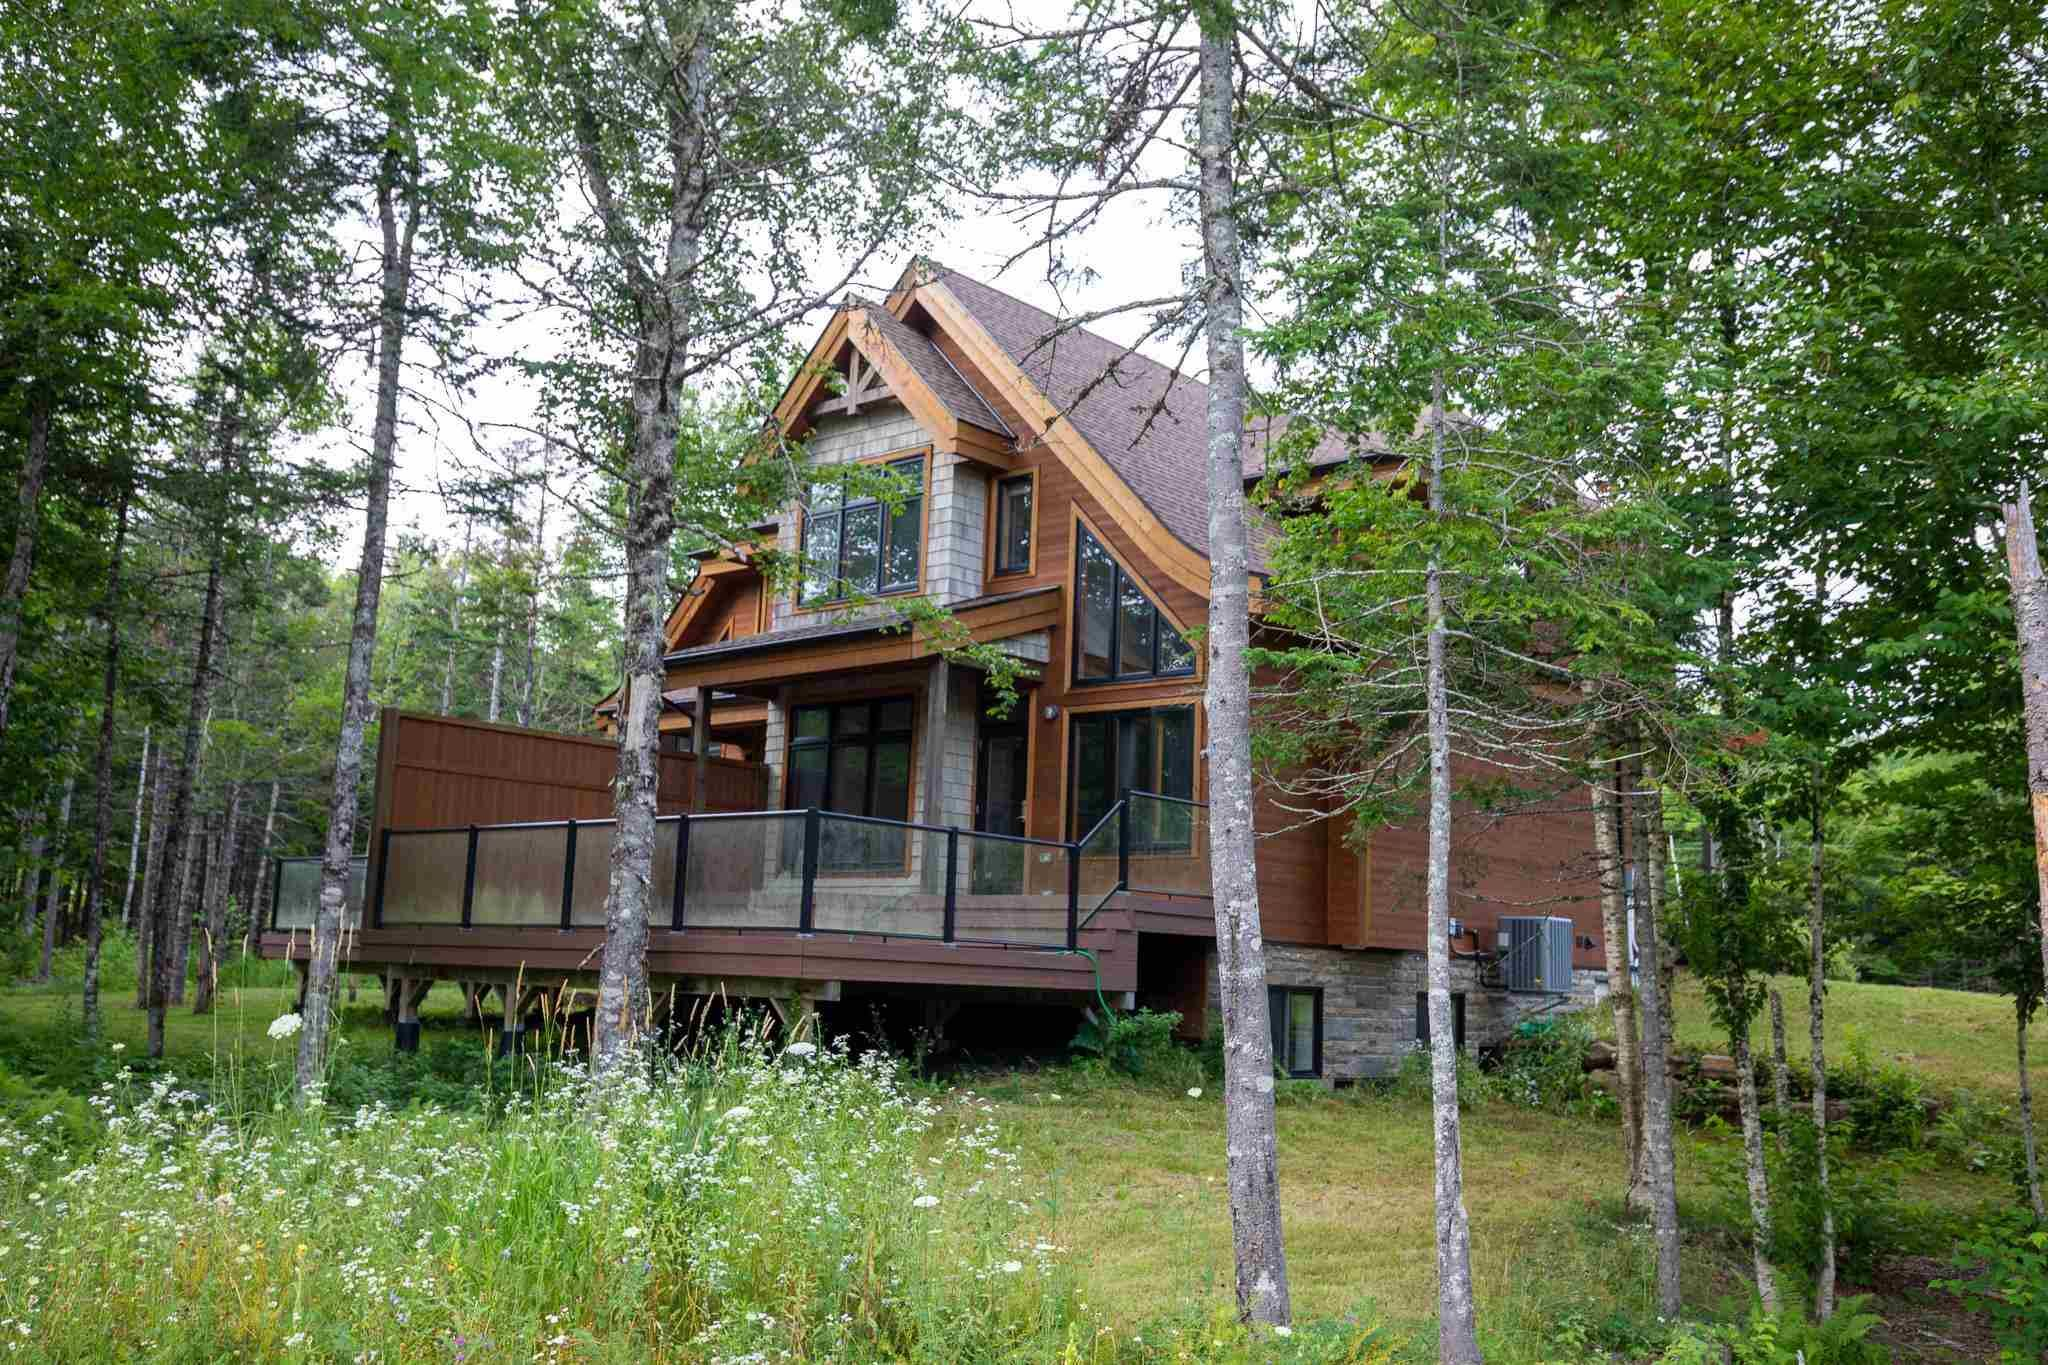 Main Photo: 7 Black Cherry Lane in Ardoise: 403-Hants County Residential for sale (Annapolis Valley)  : MLS®# 202118682